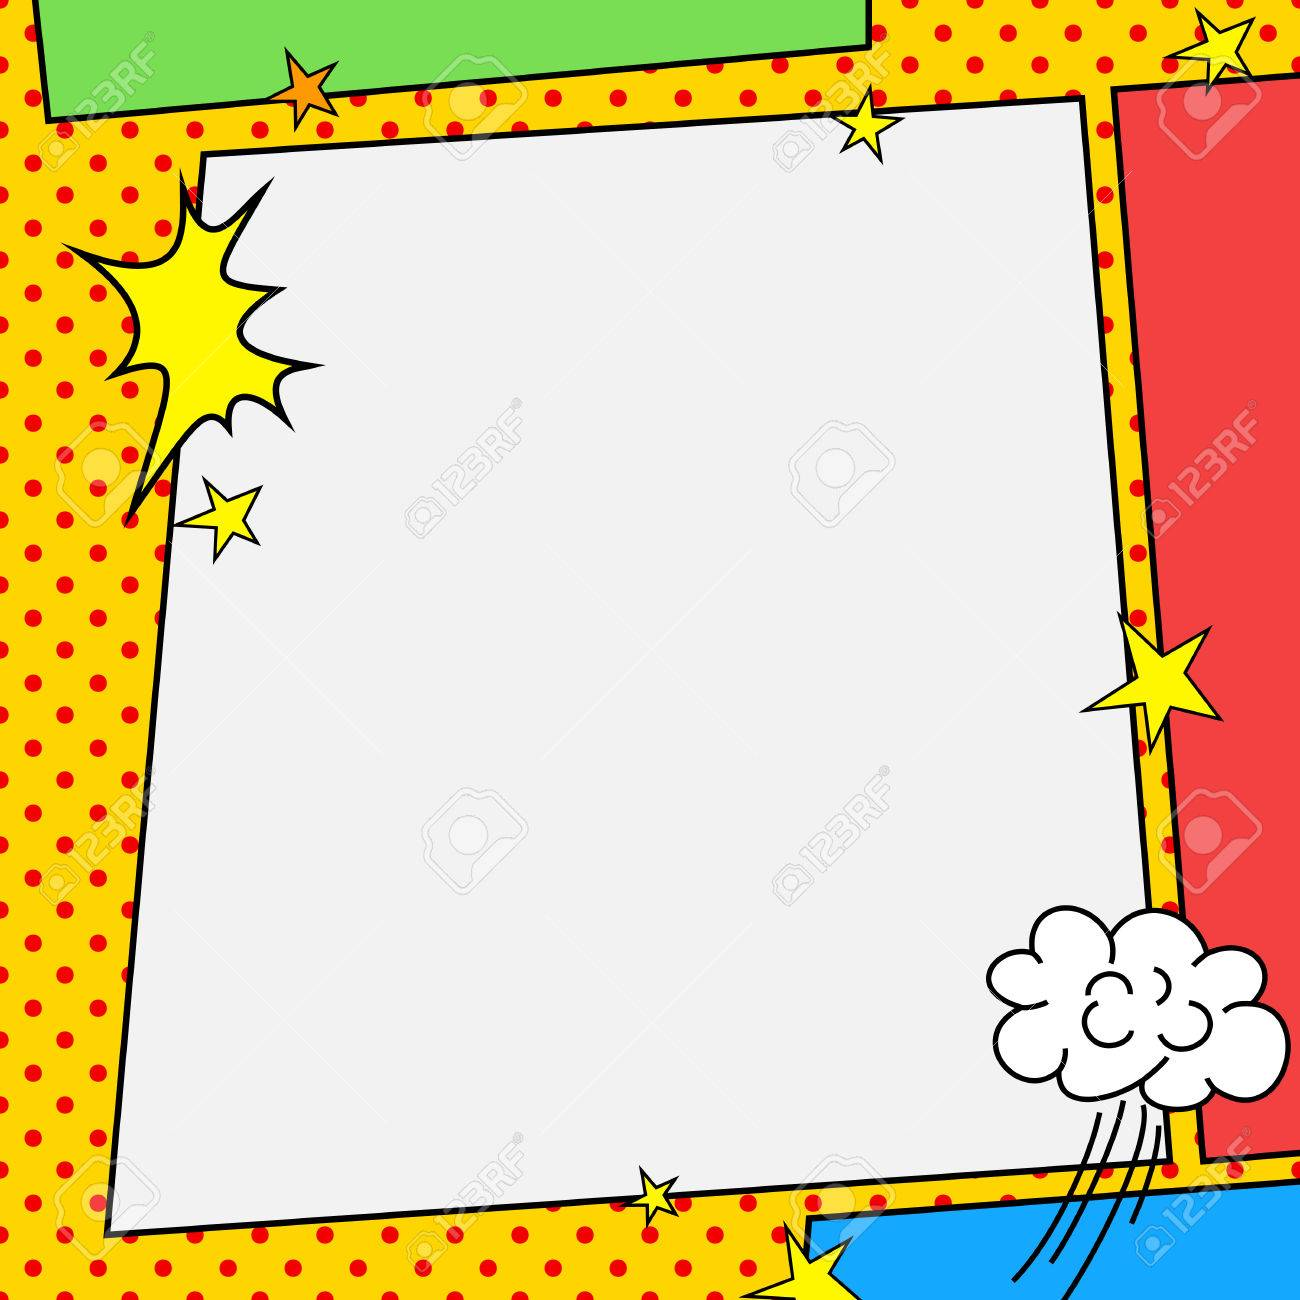 Comic Book Style Frame Stock Photo, Picture And Royalty Free Image ...